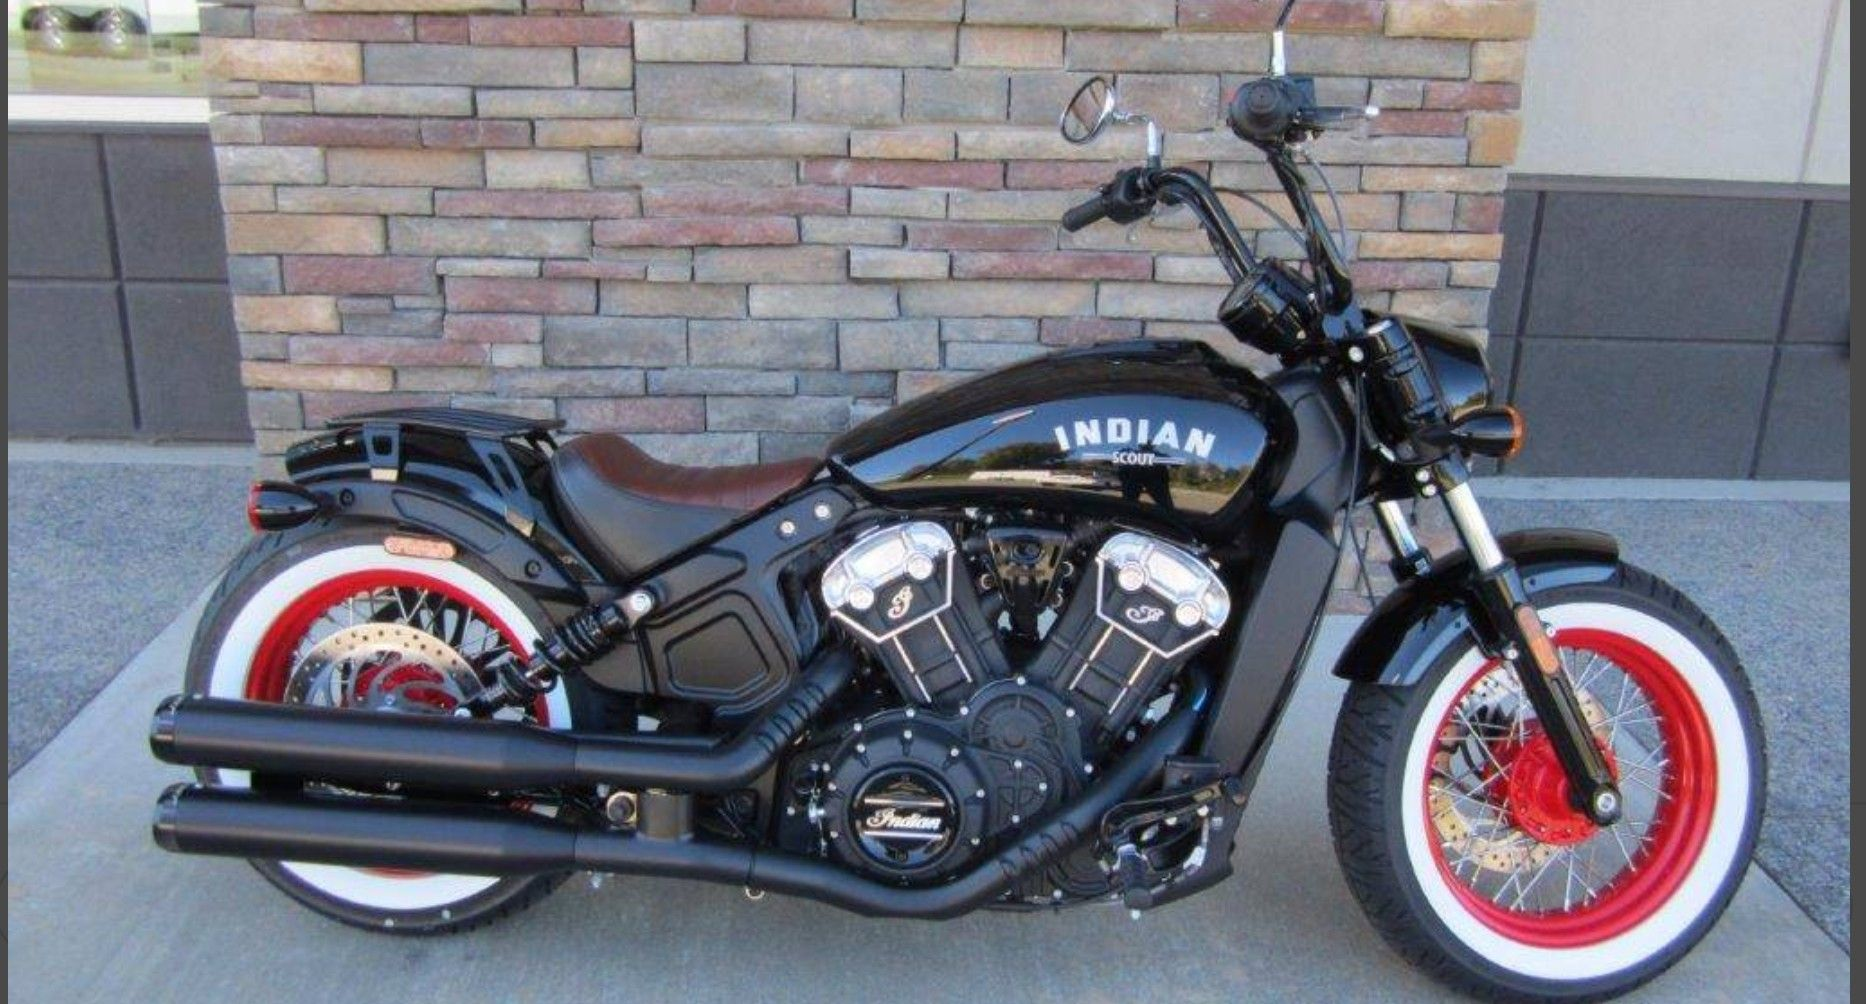 Gorgeous Indian Motorcycle With Whitewalls Indian Motorcycle Scout Indian Scout Bike Indian Scout Sixty